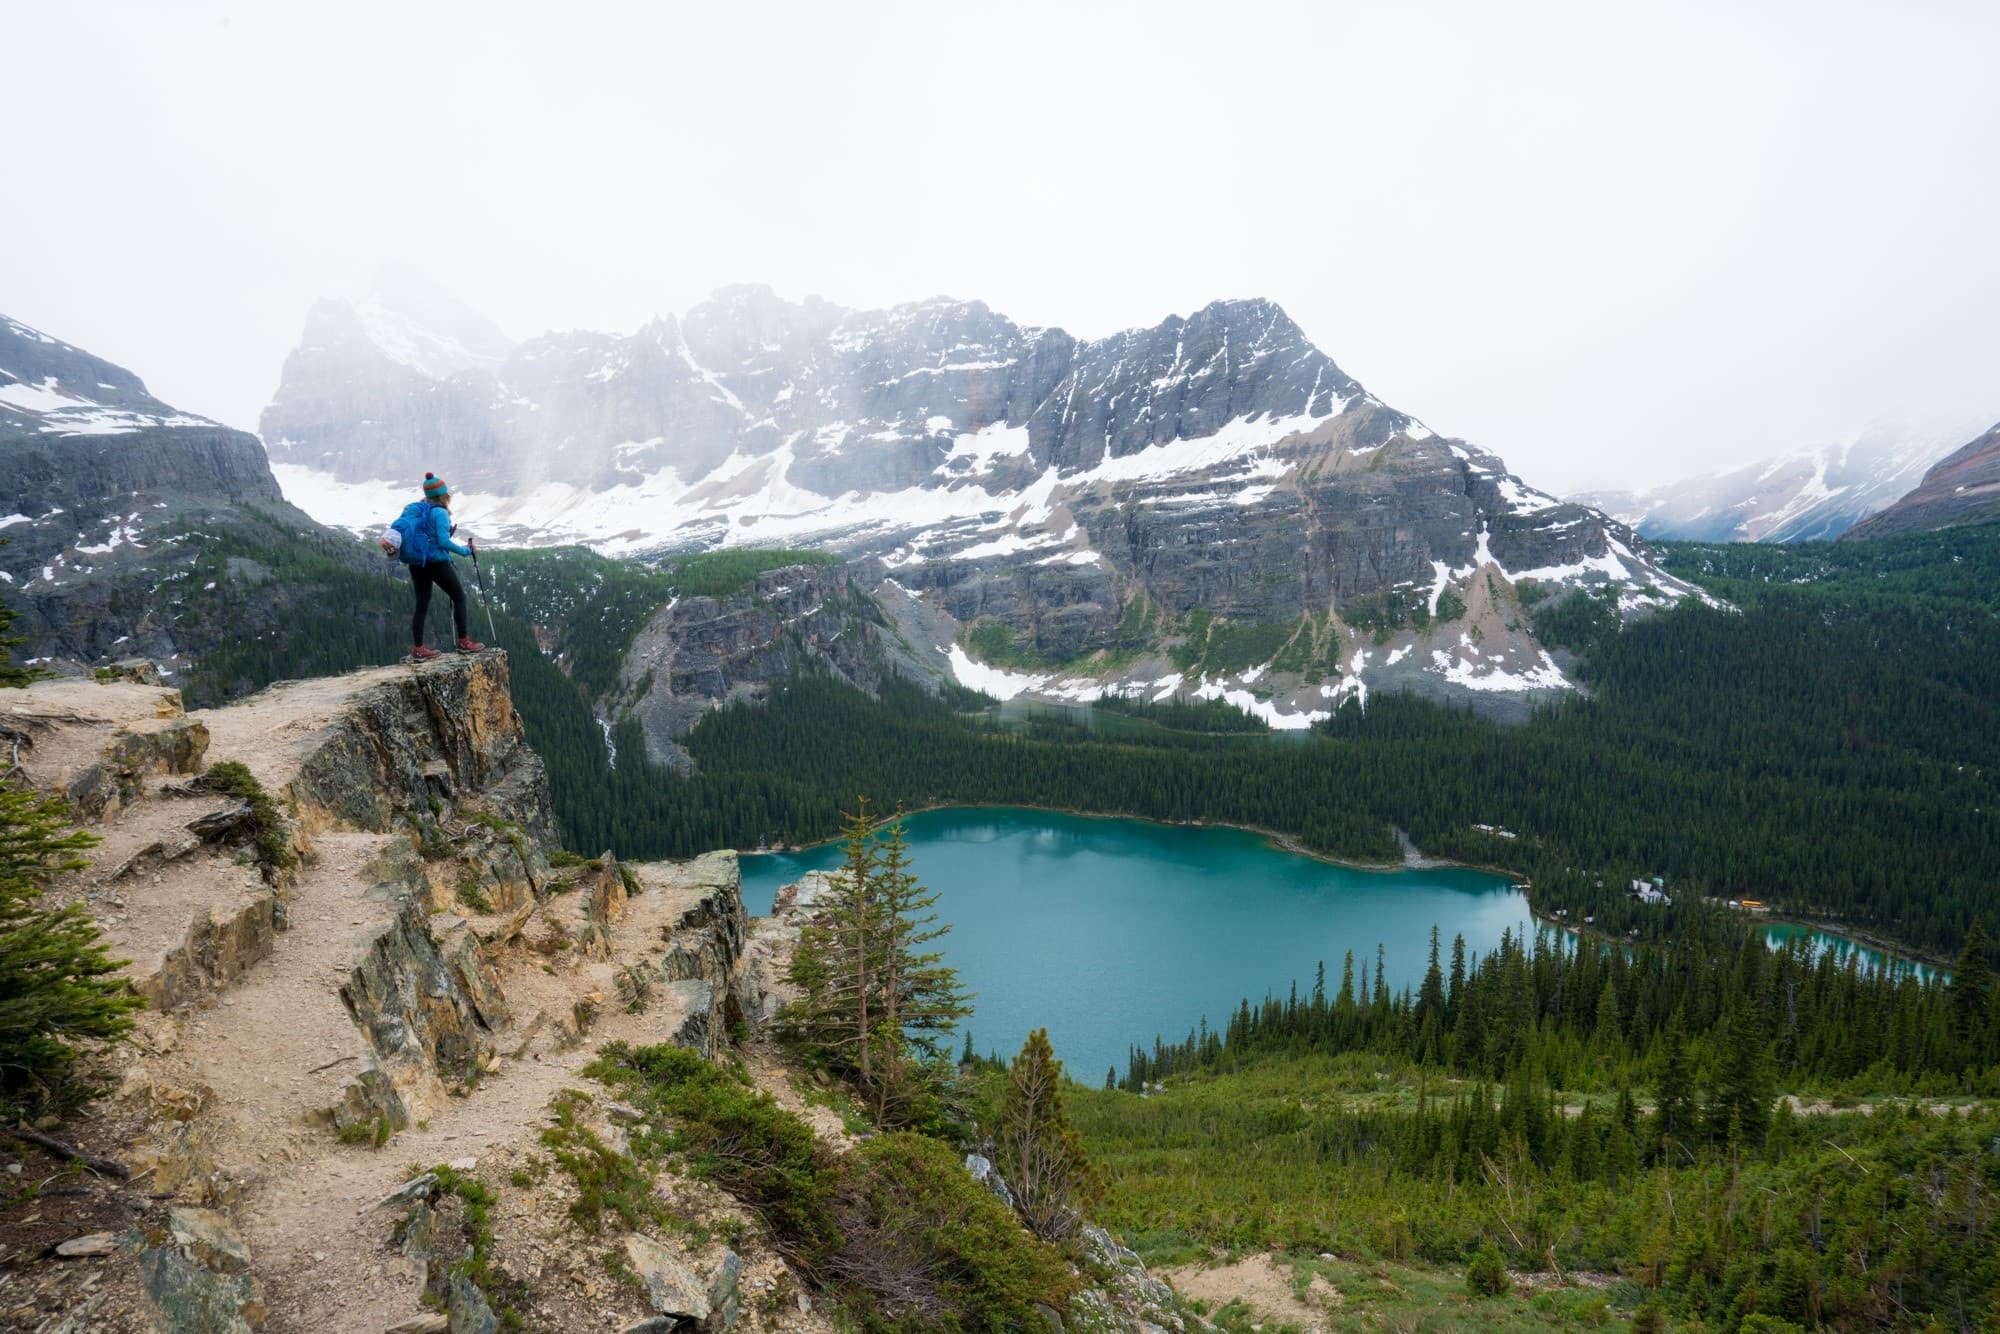 Wiwaxy Gap // Four days at Lake O'Hara was the highlight of my Canadian Rockies trip. Get my detailed hiking & camping guide to this British Columbia National Park.